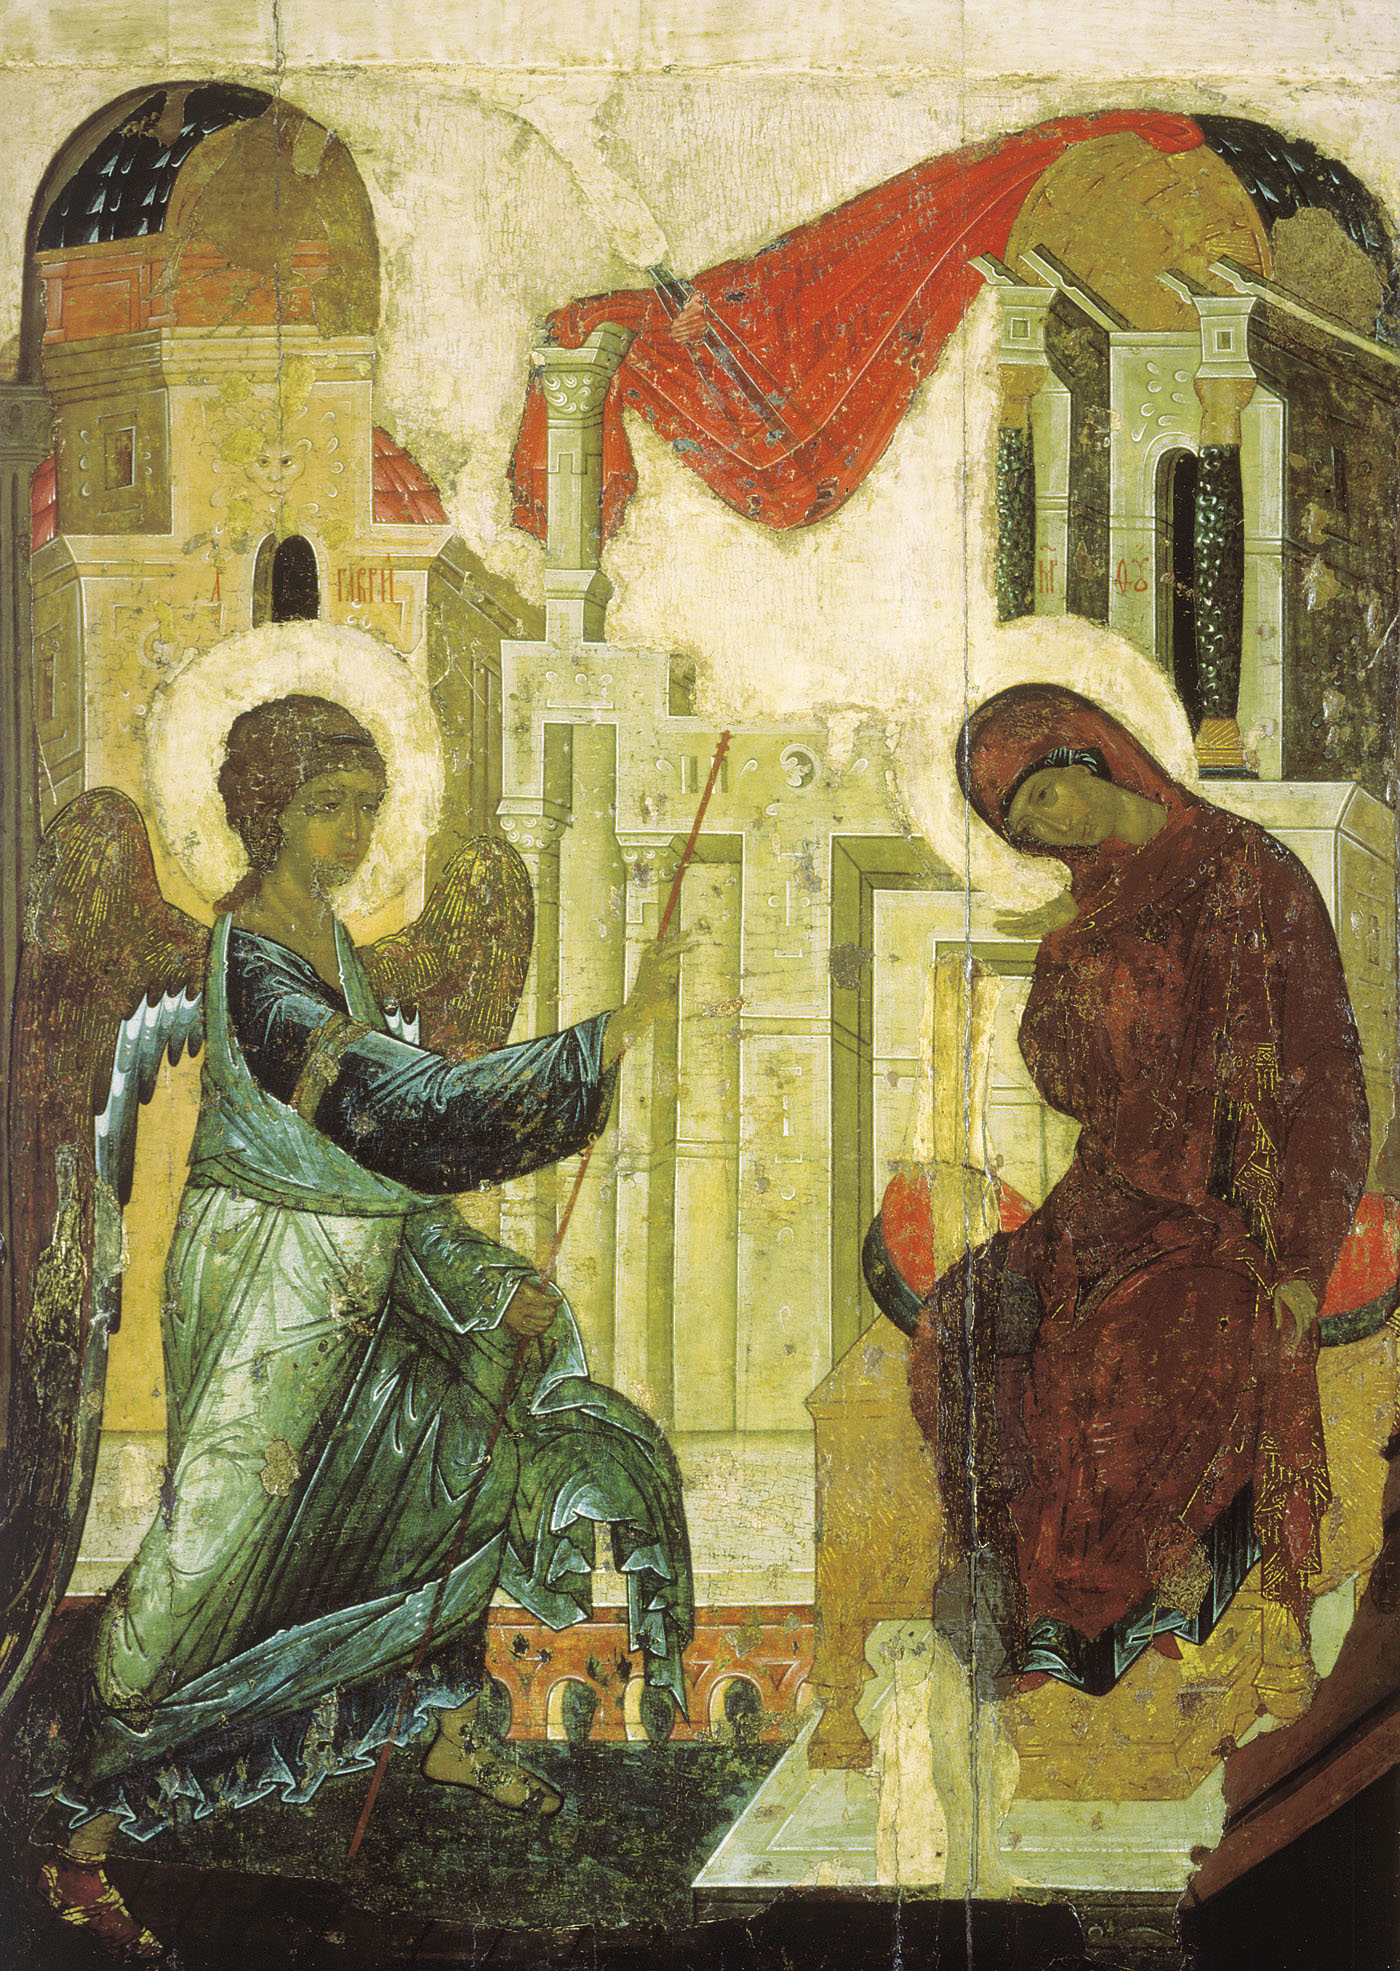 Feast of the Annunciation, April 7th